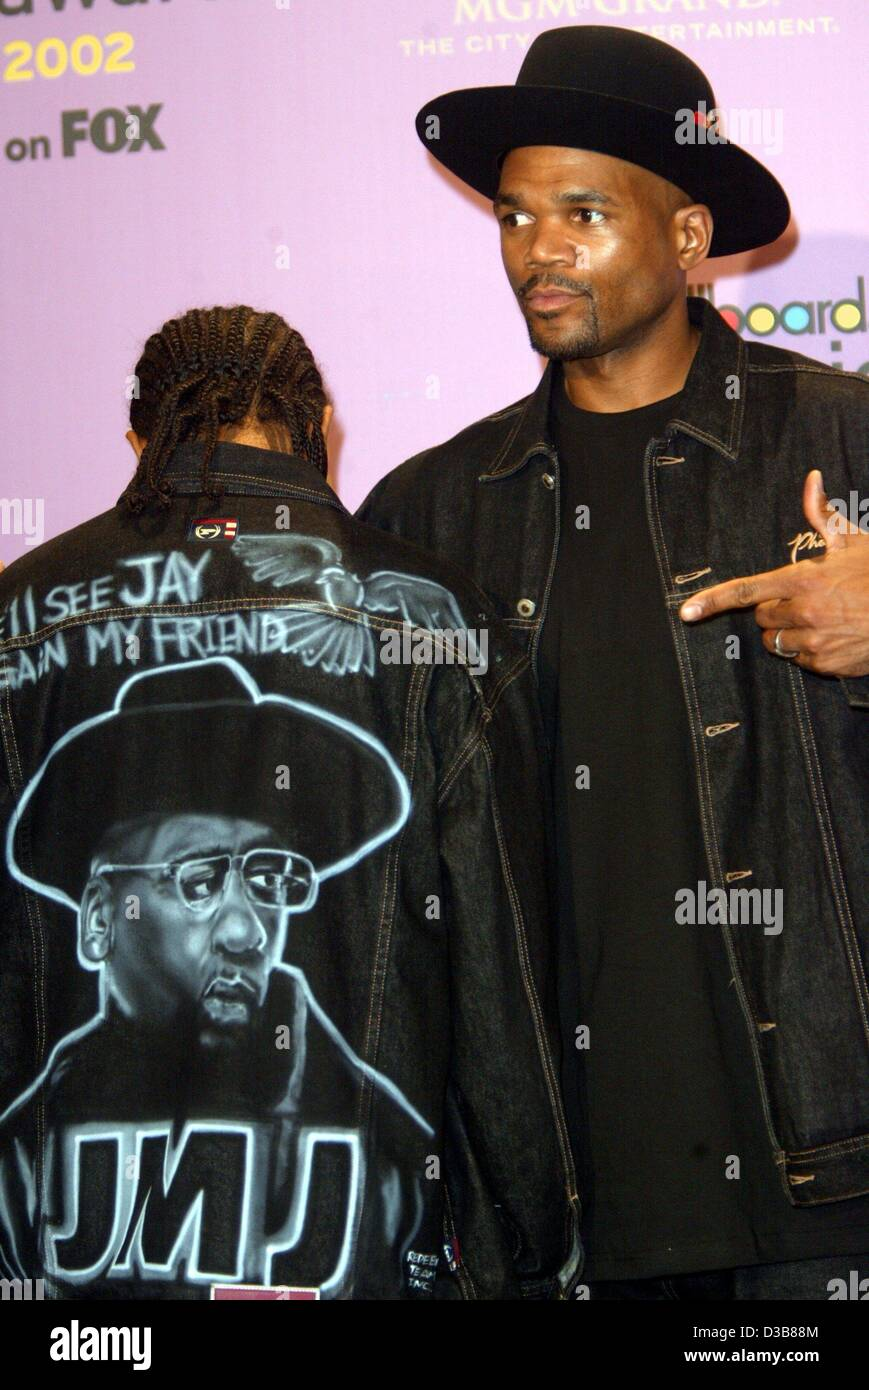 A member of the rap group 'Run - DMC'points to graffiti on the jacket of another band member, which shows - Stock Image